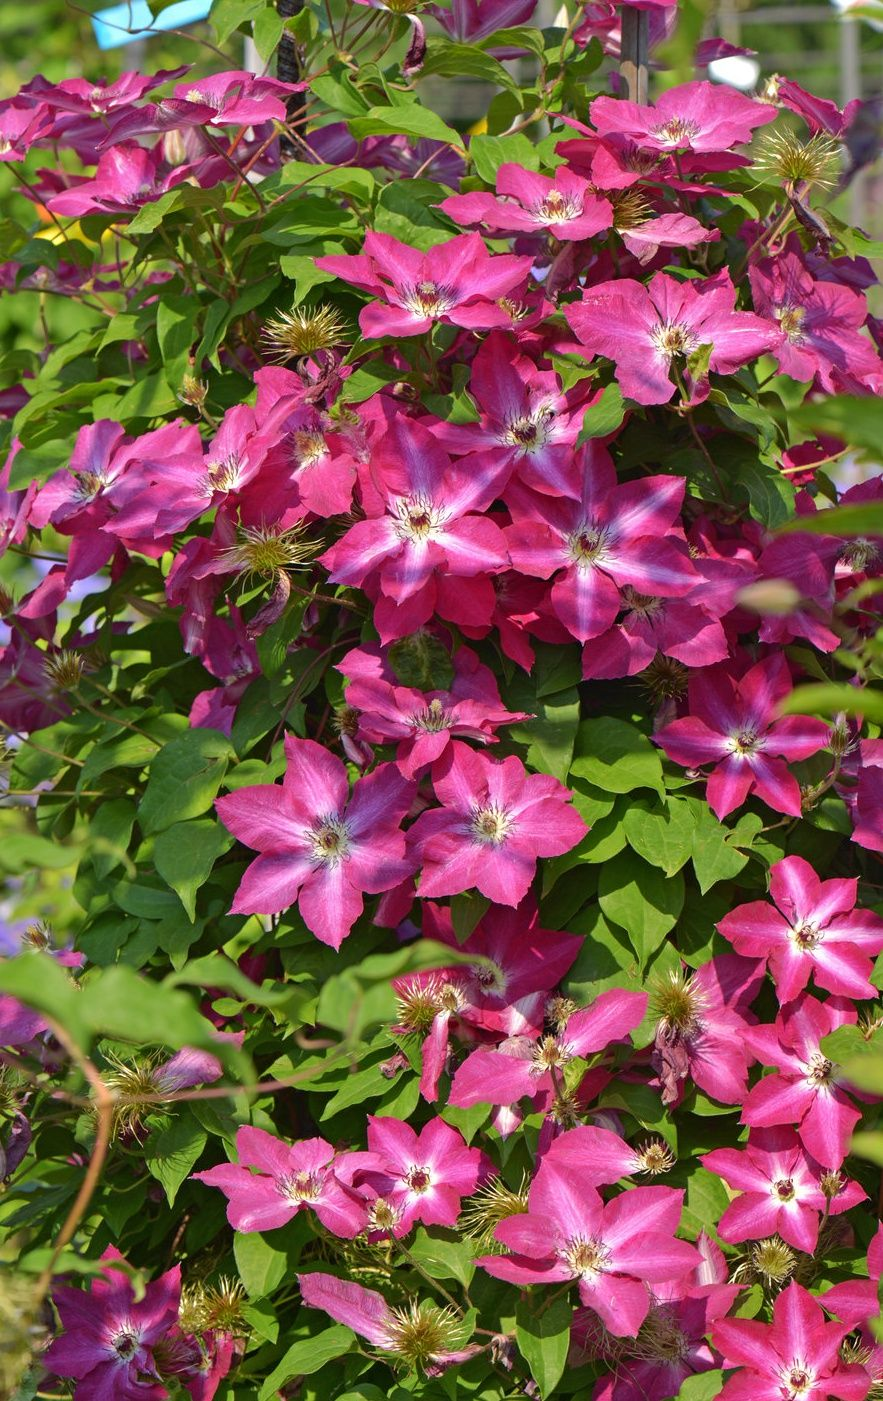 Add Star Power To Your Garden With Viva Polonia Clematis These Unusual Red Flowers Have A White Star Through The Cente Flowering Vines Clematis Garden Vines